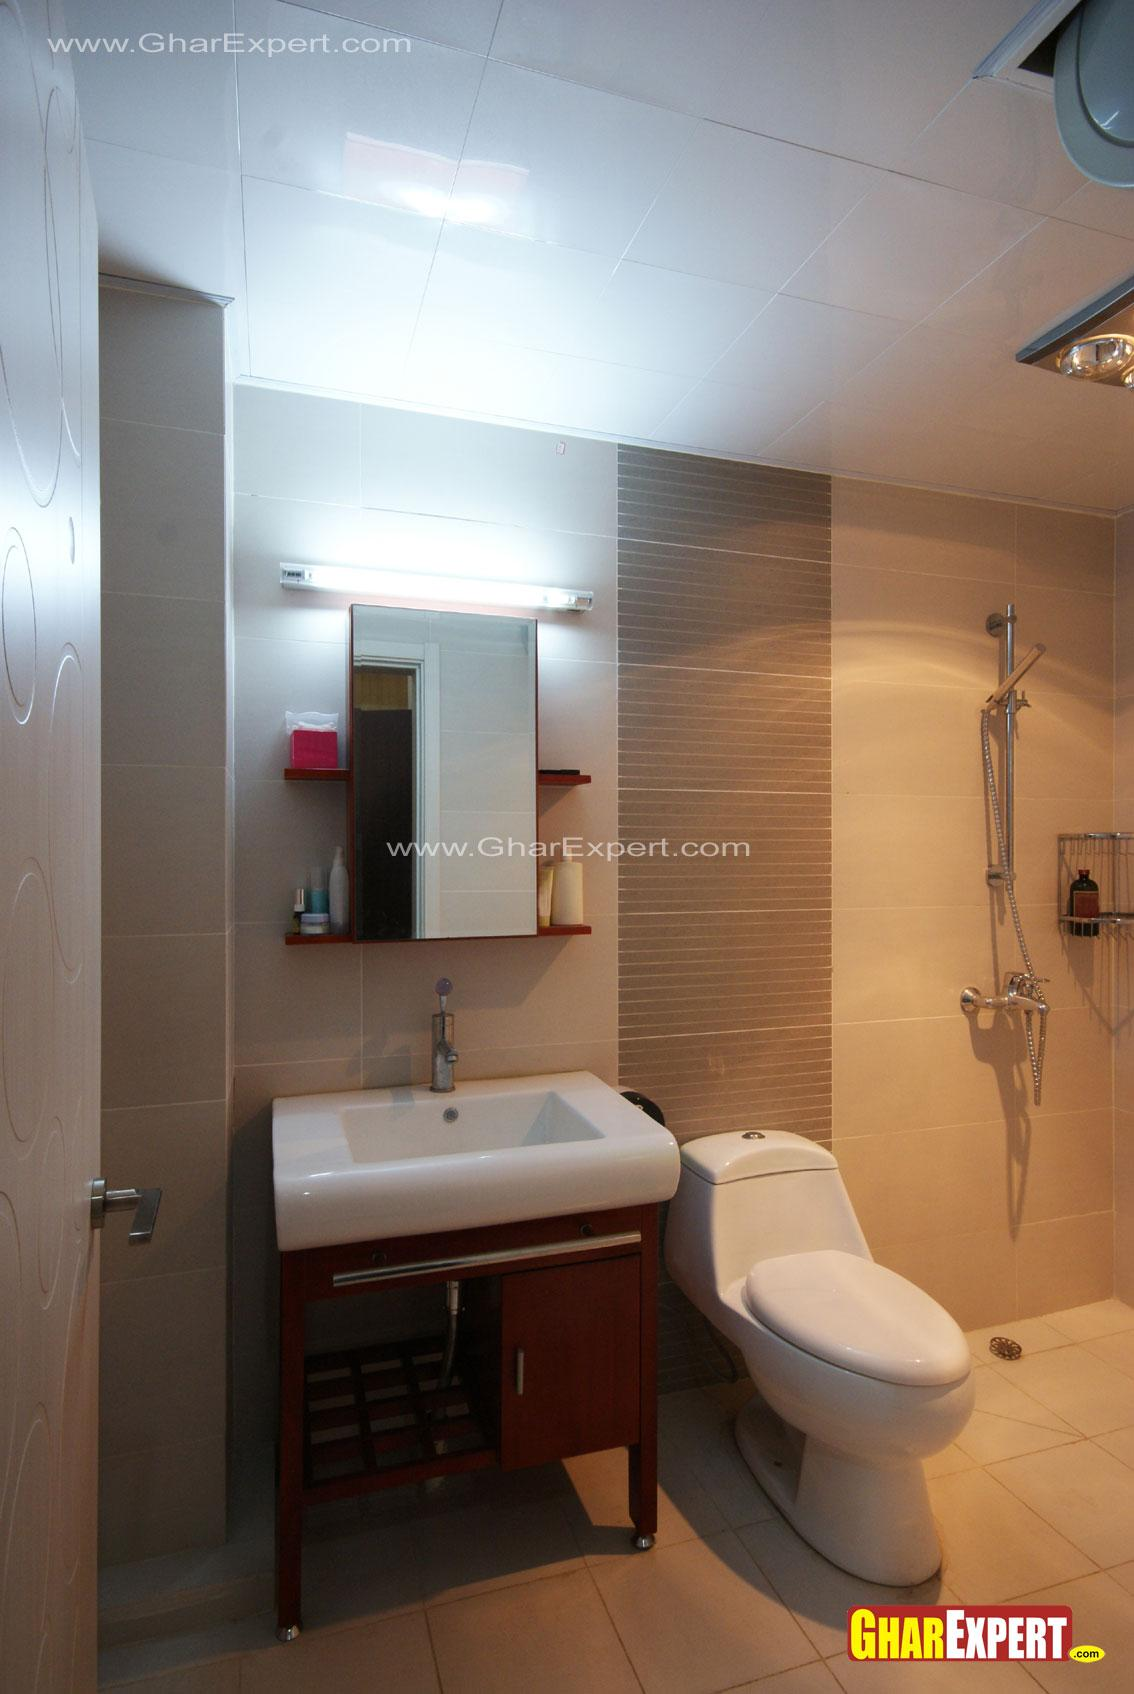 Indian bathroom designs pictures - Interior Design Photos For Small Flats In Mumbai Home Decor